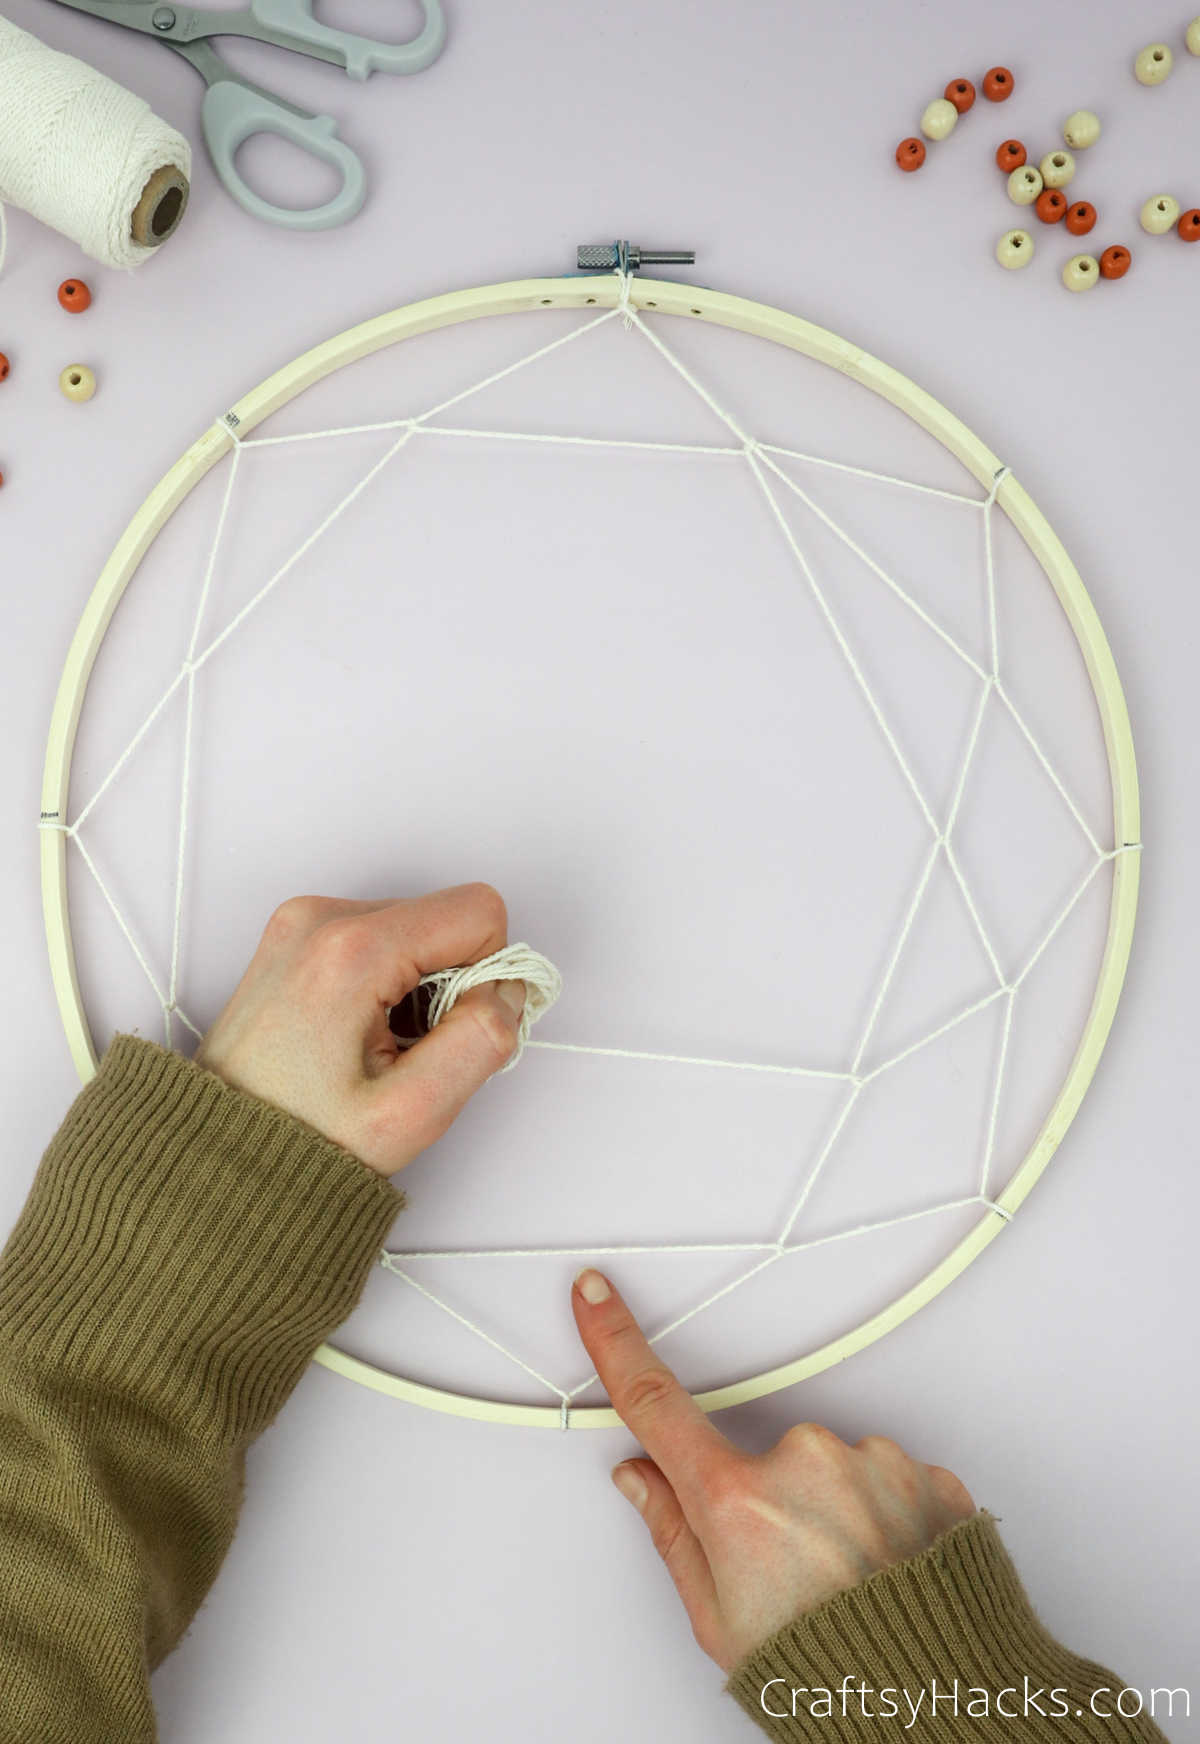 wrapping string all the way around hoop